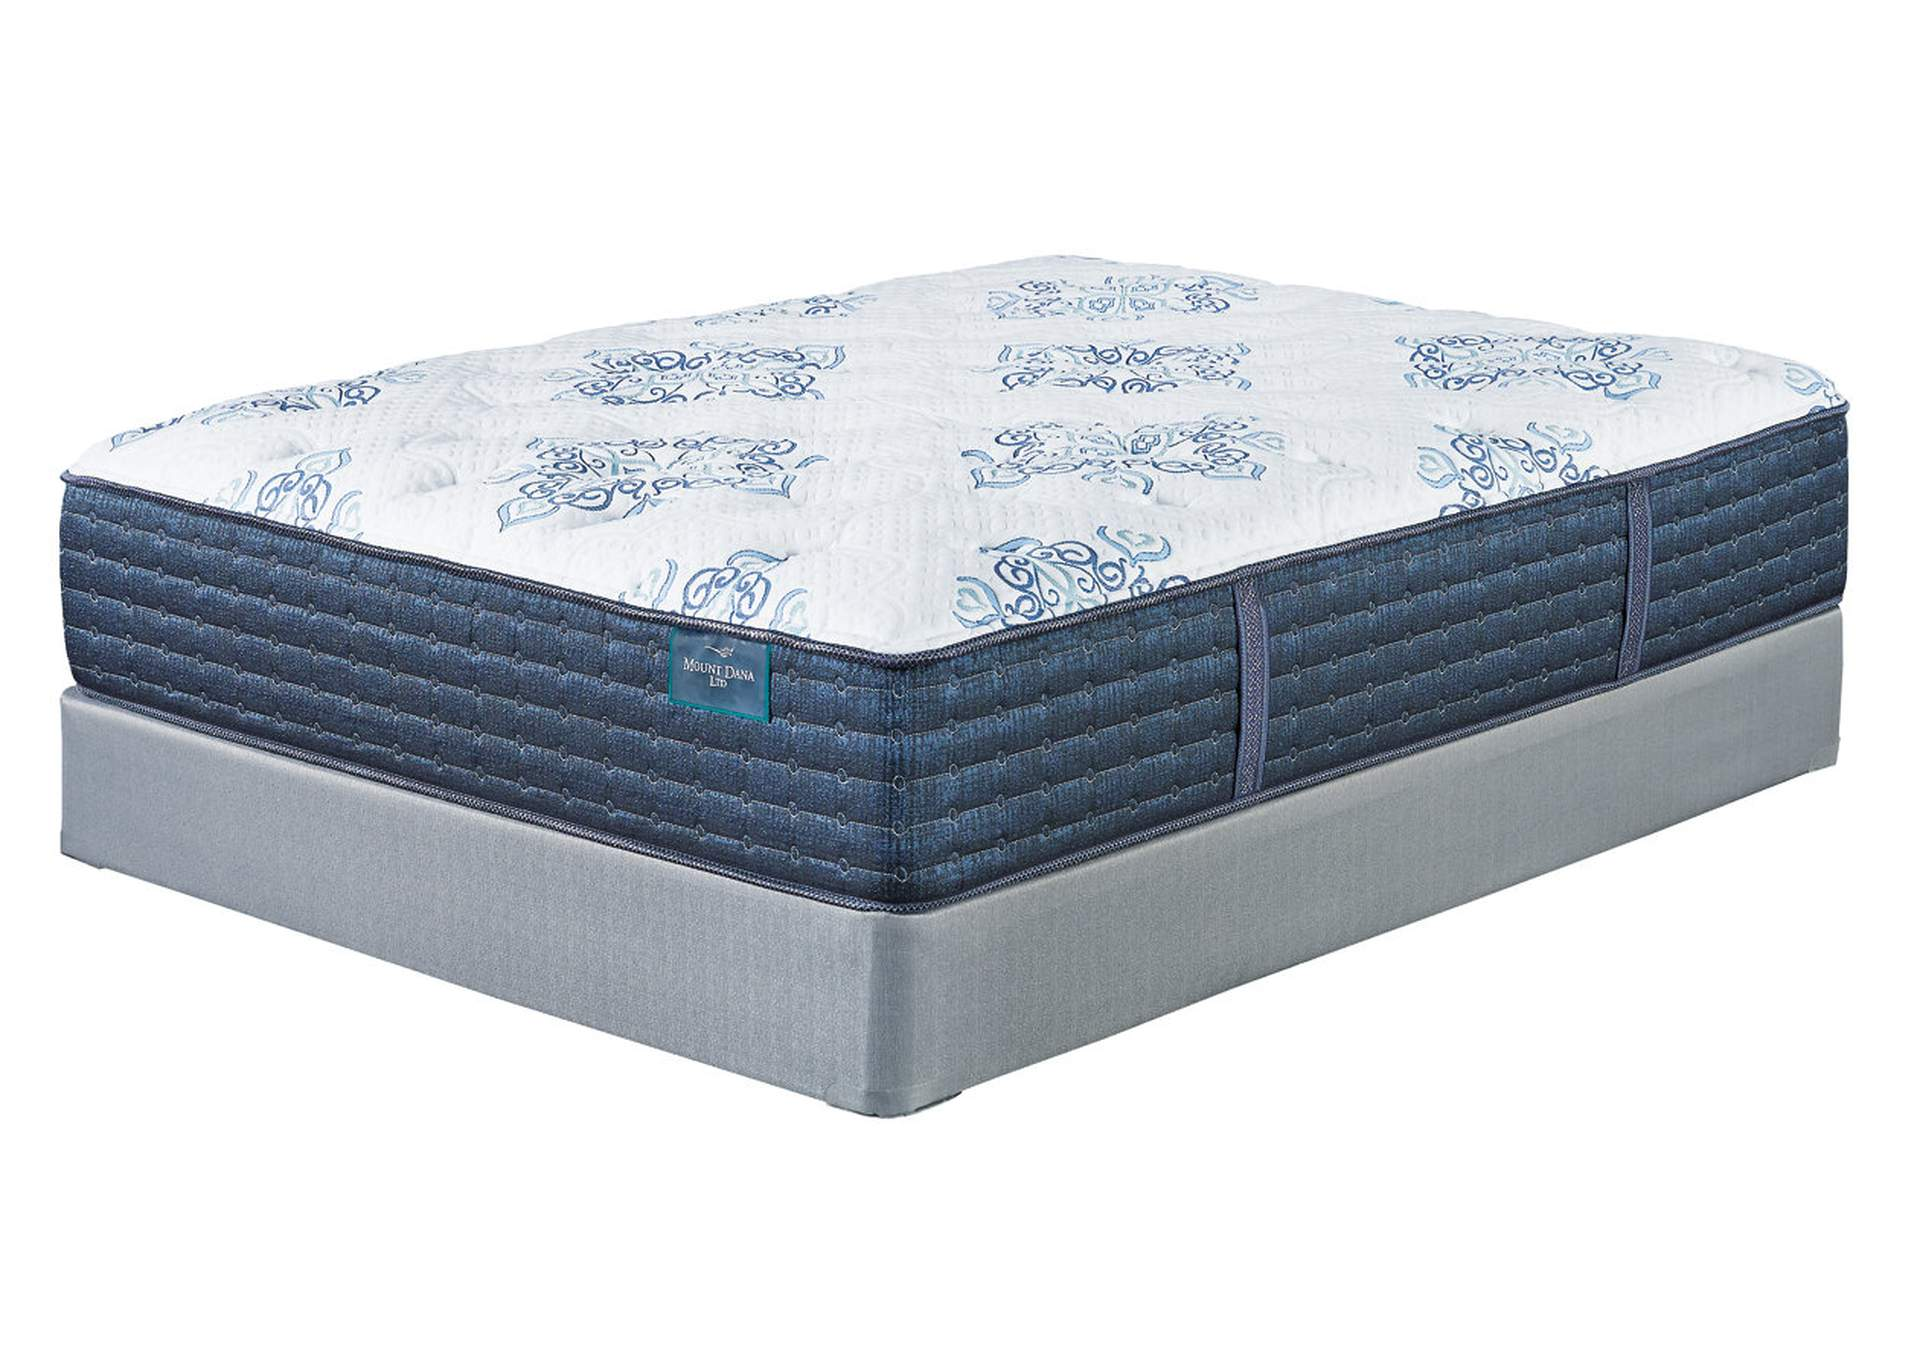 Mt. Dana Plush White Twin Mattress,Sierra Sleep by Ashley